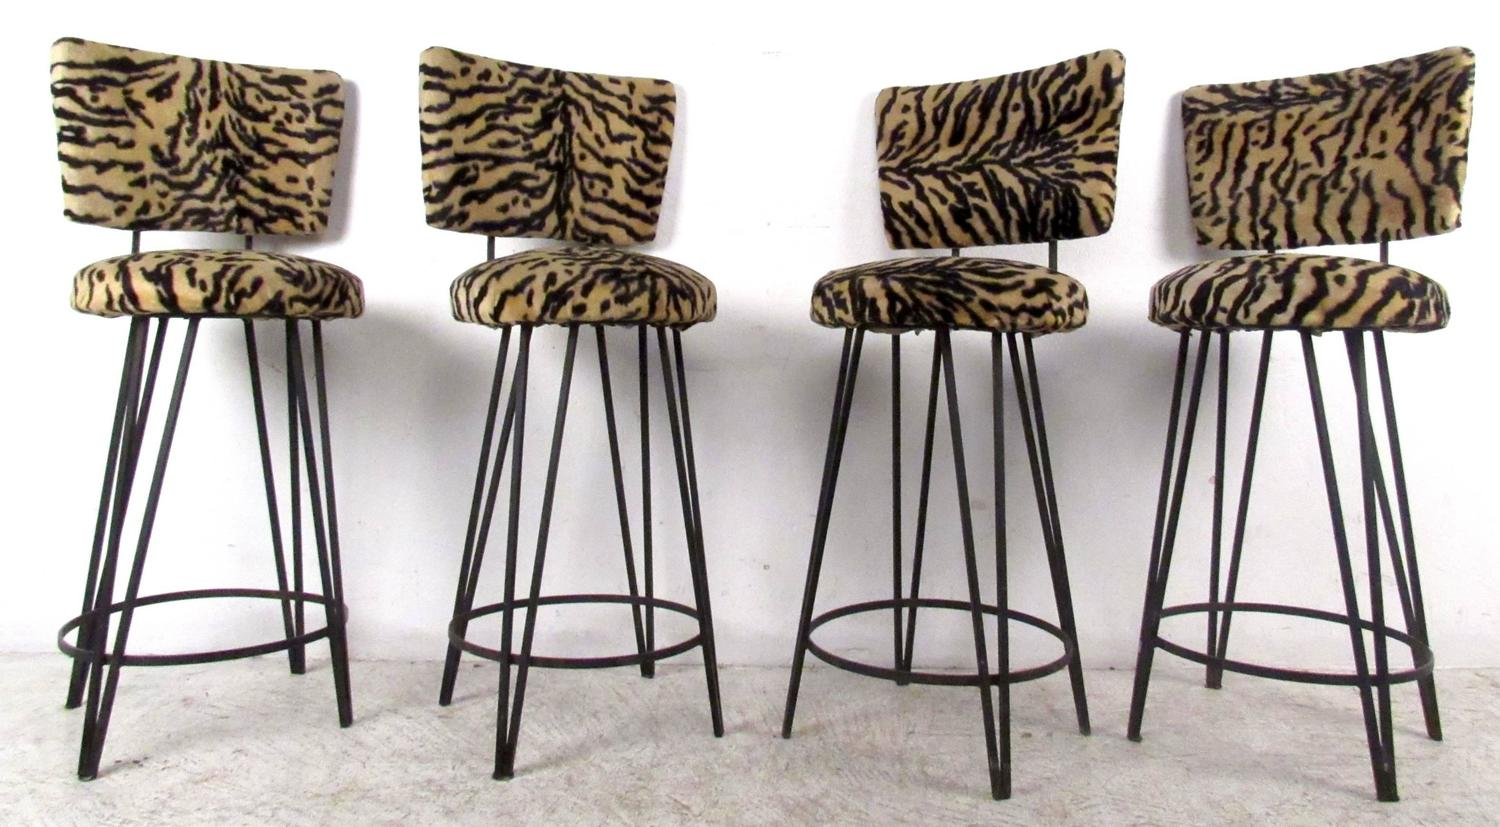 Four Mid Century Leopard Print Stools For Sale At 1stdibs